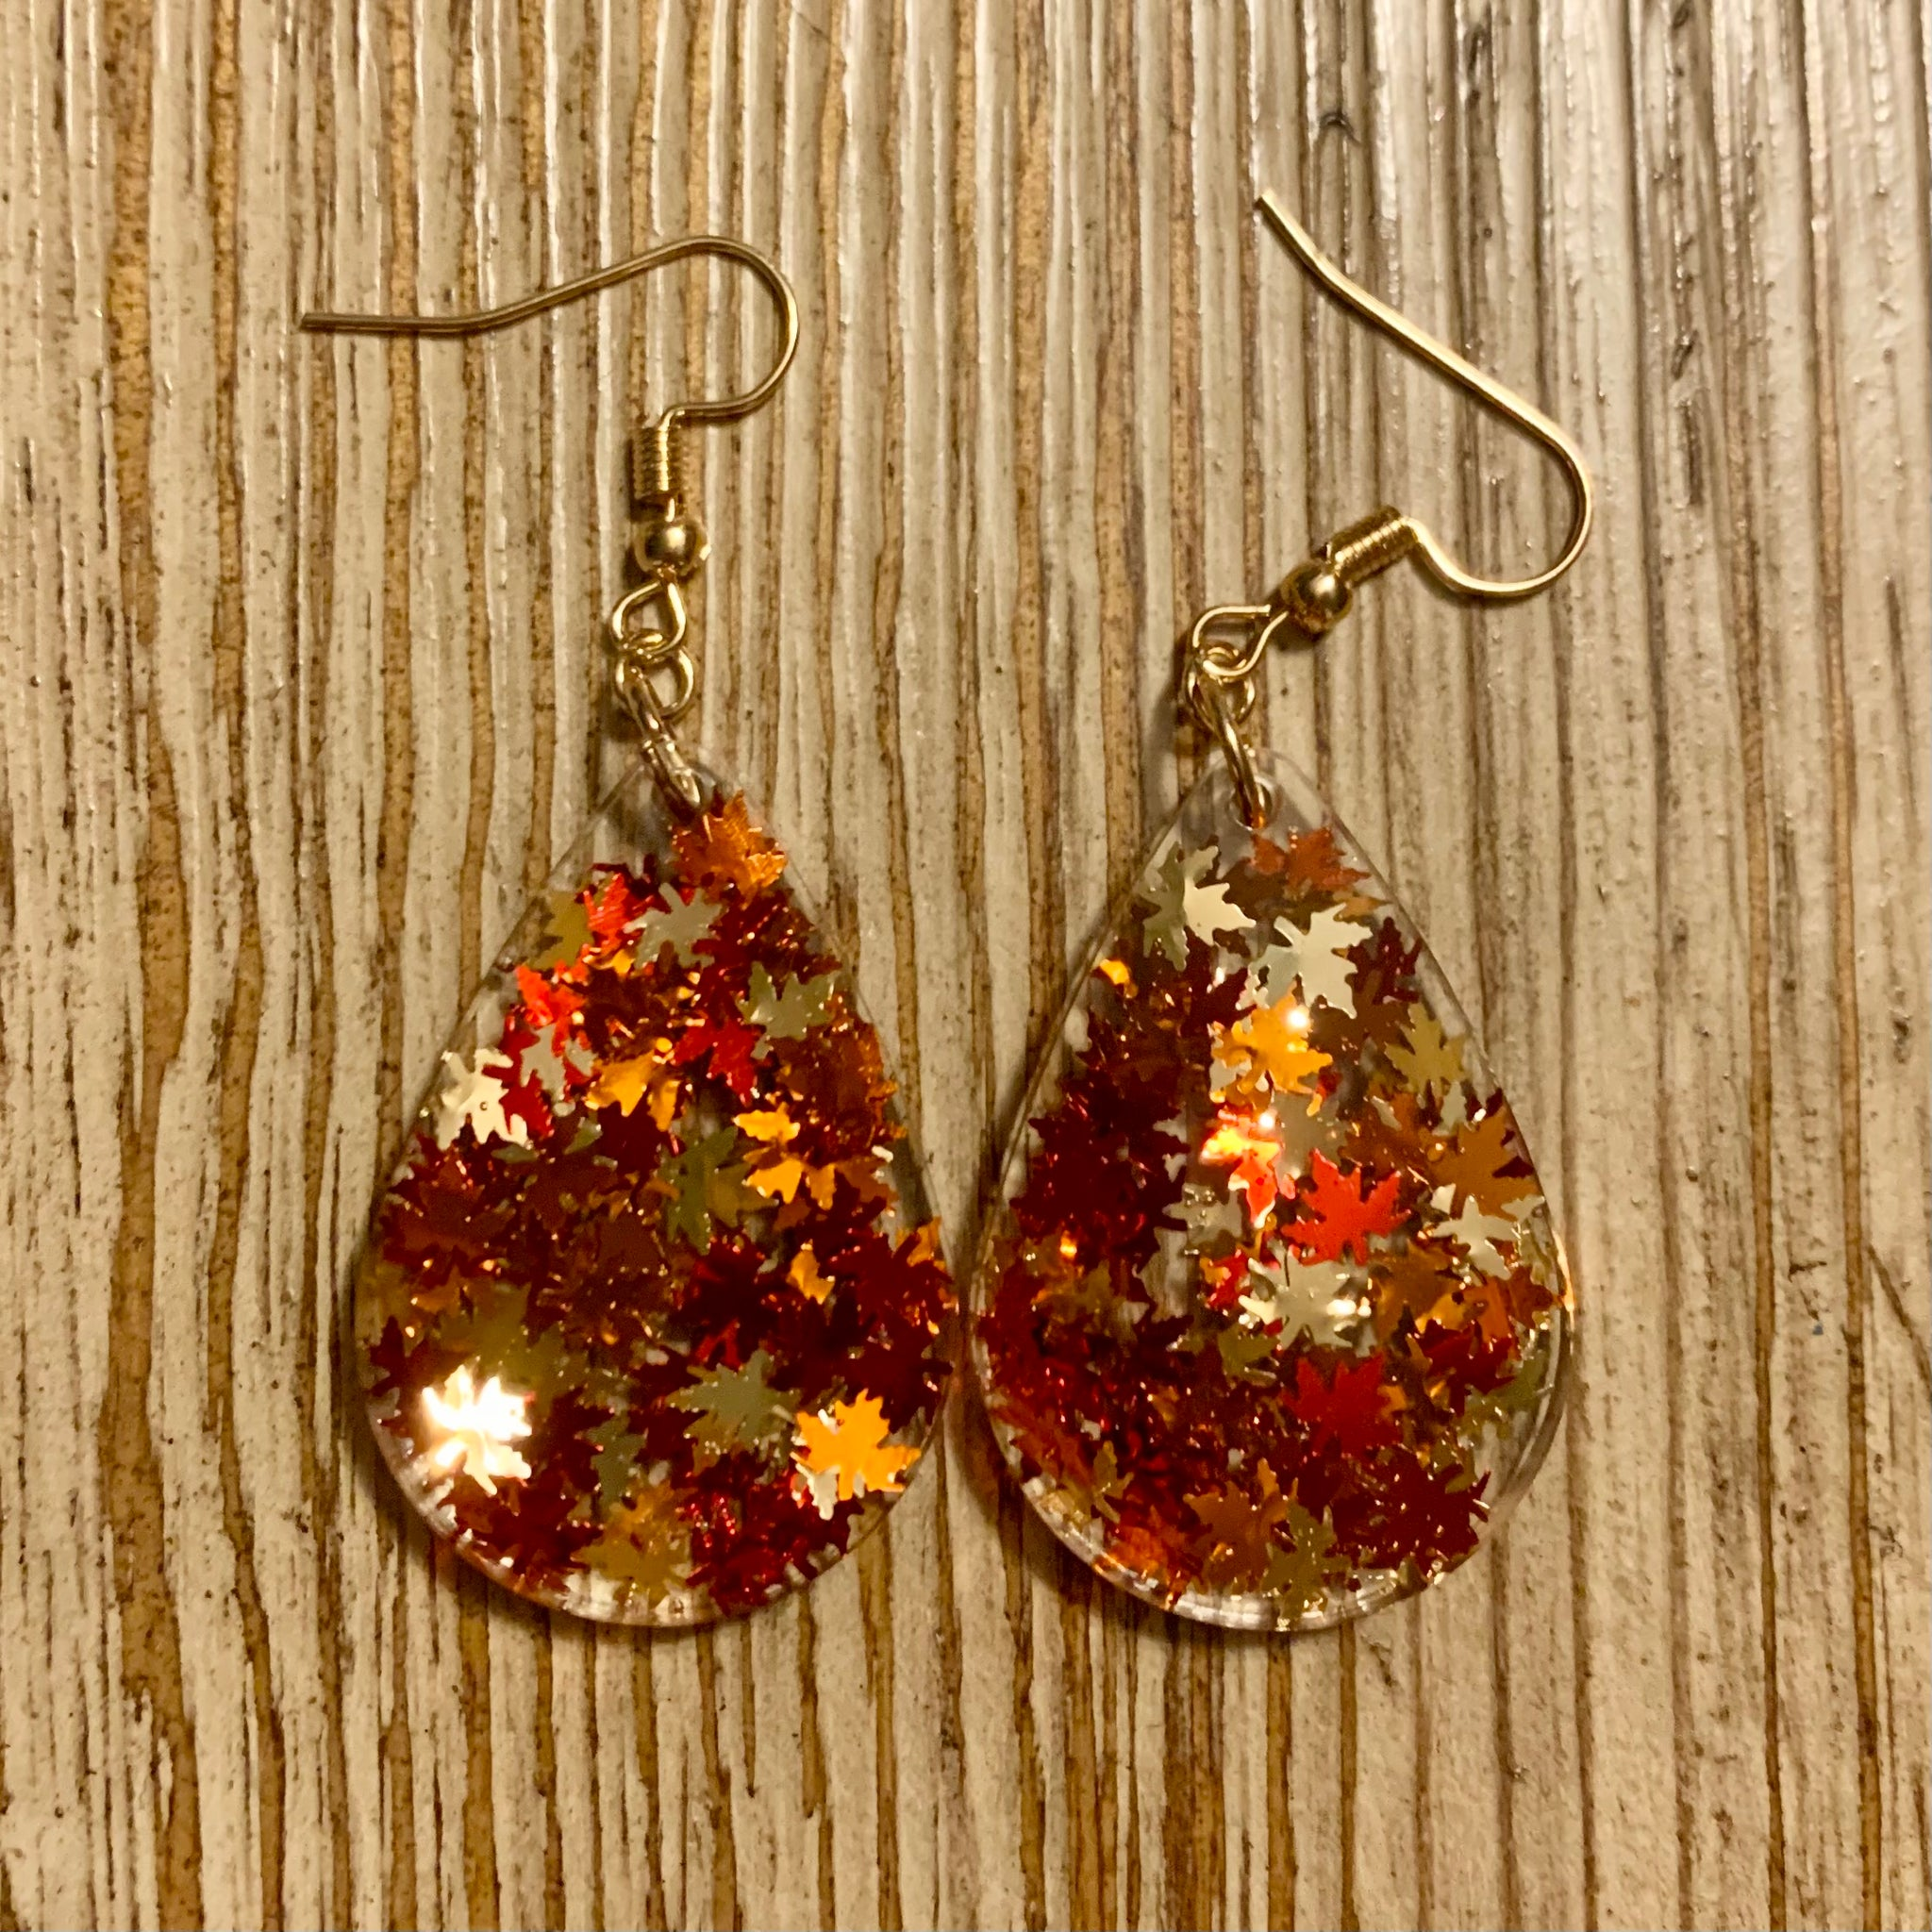 Fall Leaves Earrings - Small